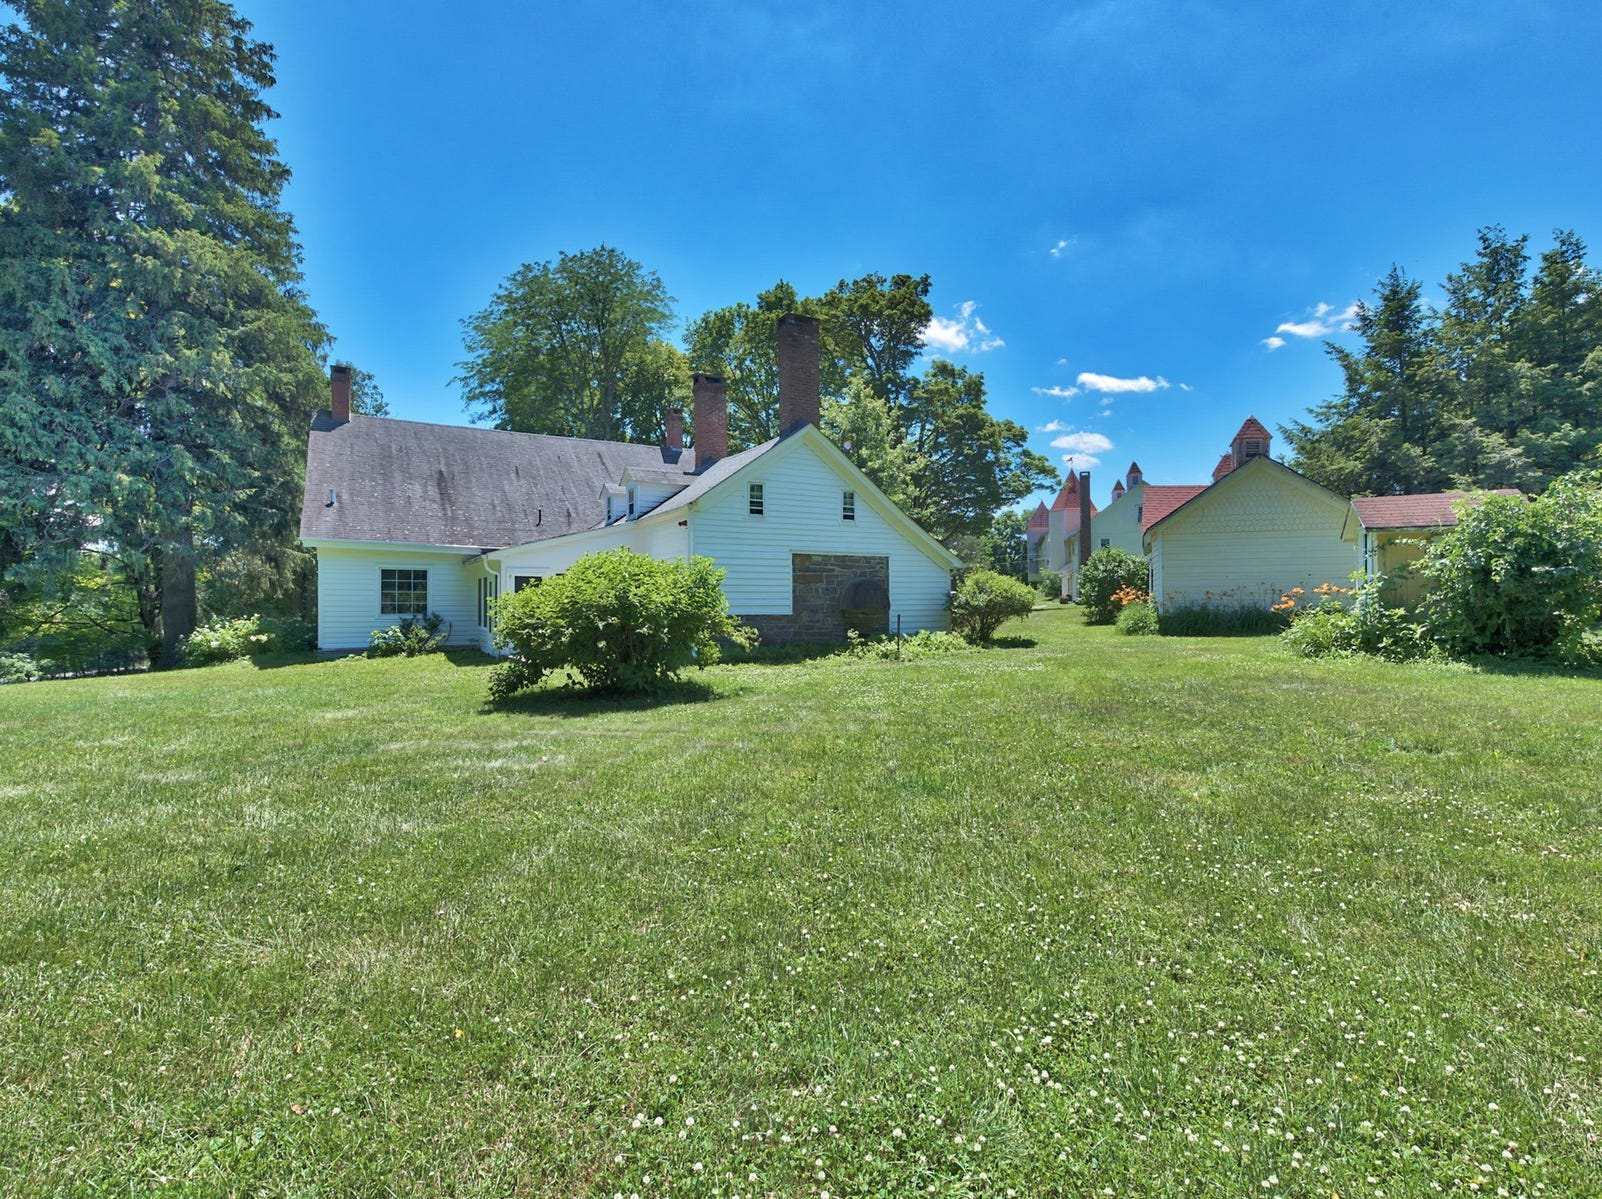 Built in the mid 1780s and also known as The John I. Crawford Farm, Hopewell Farm in Ulster County it is one of the best preserved farms from that time and remains an iconic landmark in the town of Crawford.